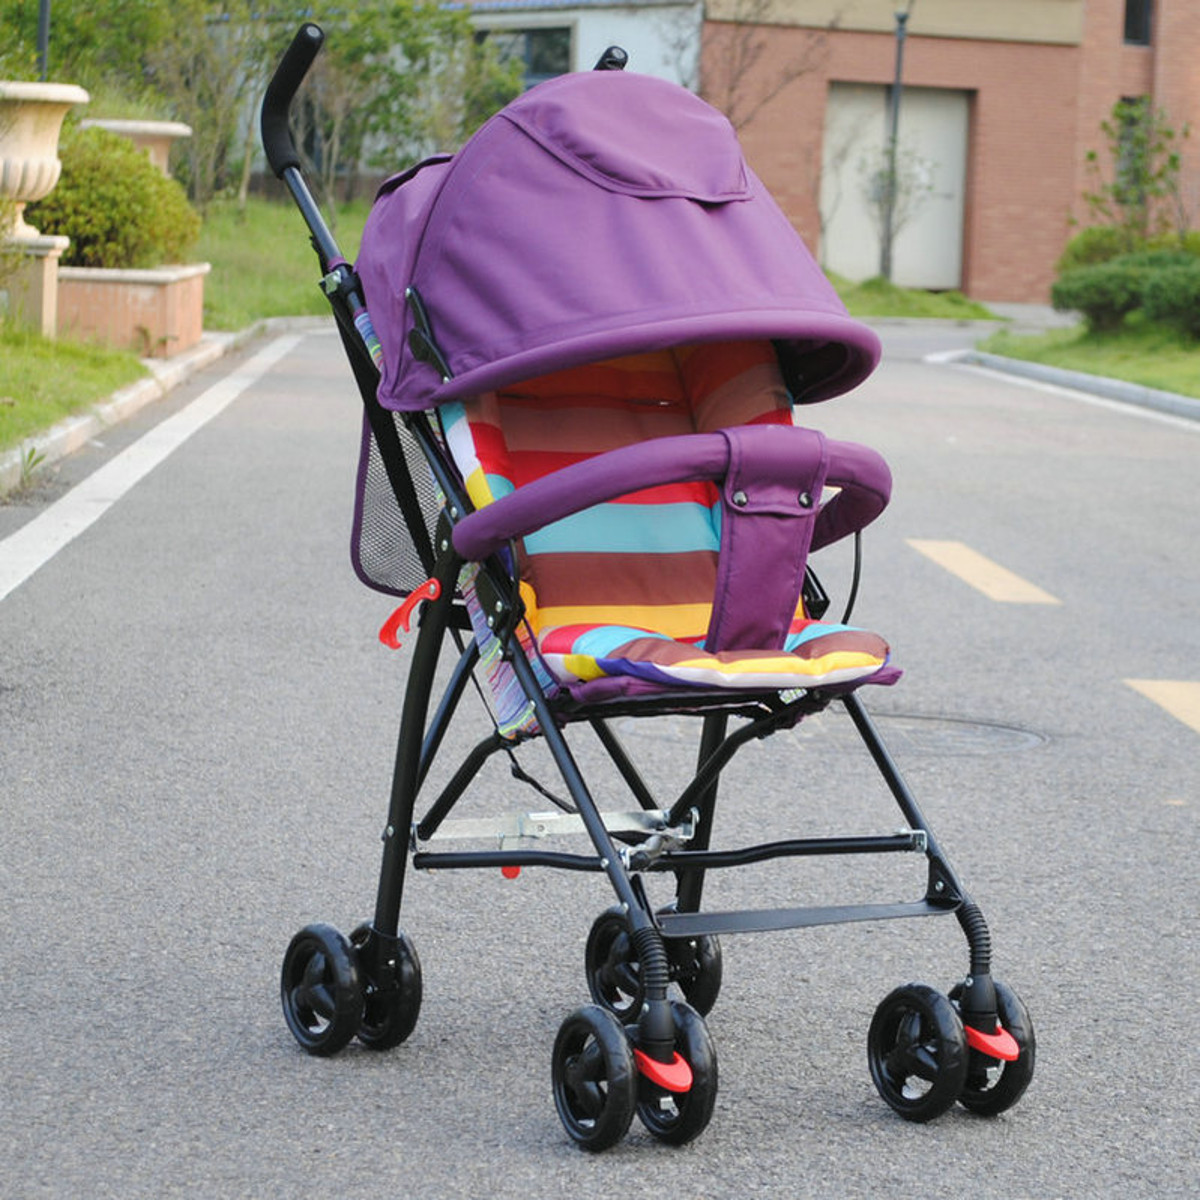 Baby Stroller Pram Chair Seat Cushion Cover Mattress Breathable Water Resistant